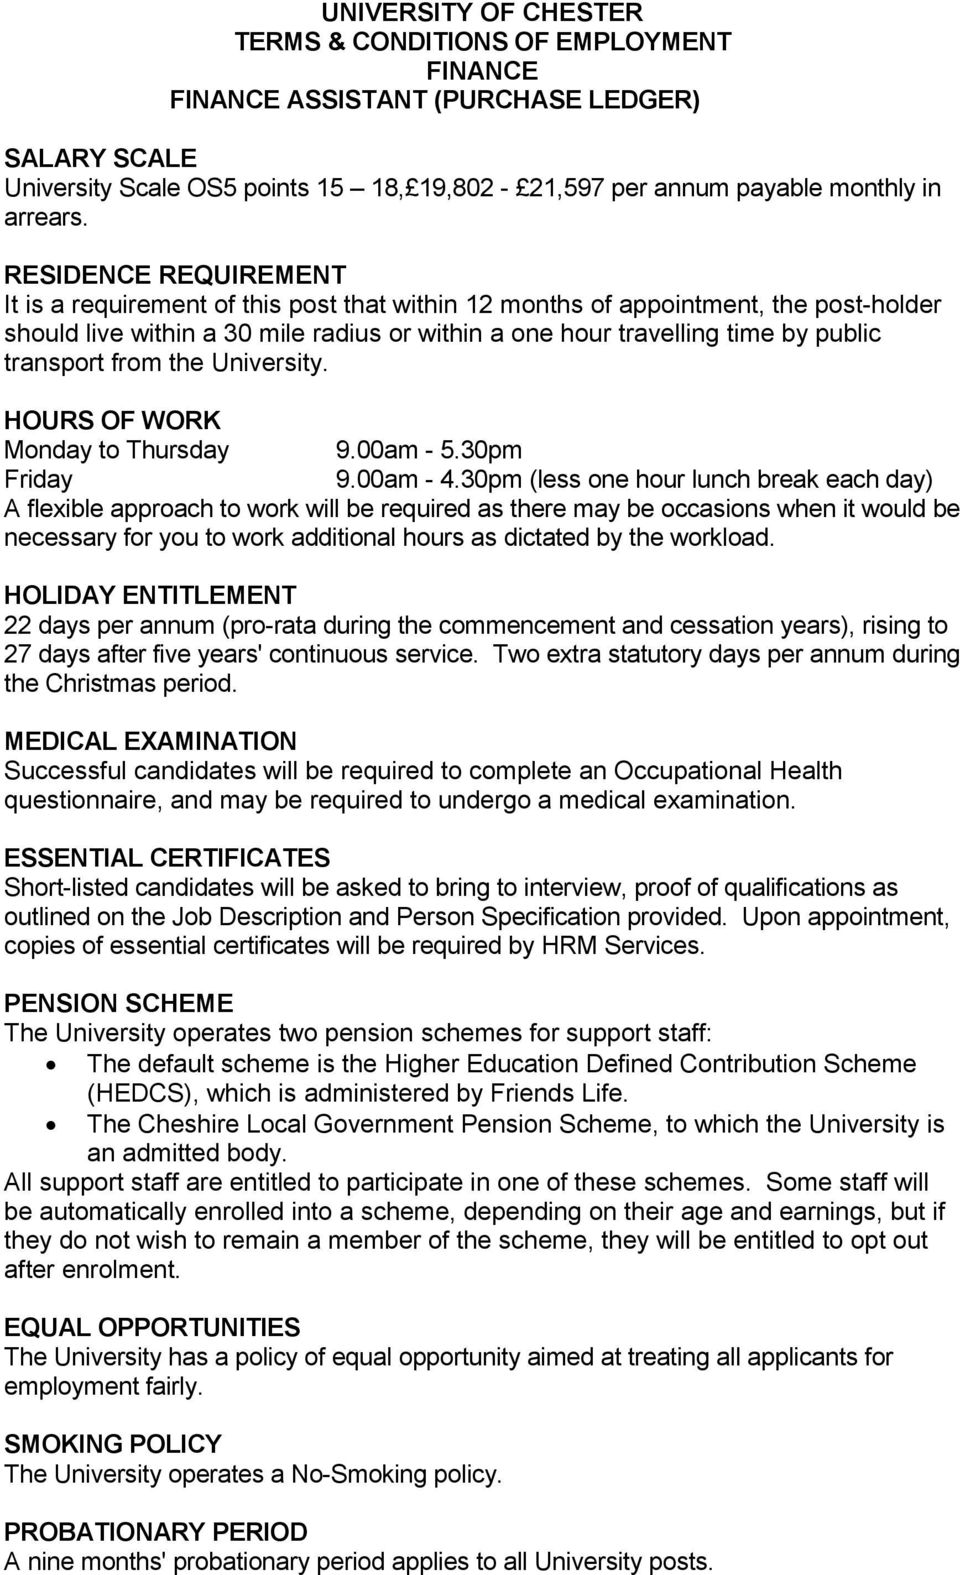 transport from the University. HOURS OF WORK Monday to Thursday 9.00am - 5.30pm Friday 9.00am - 4.